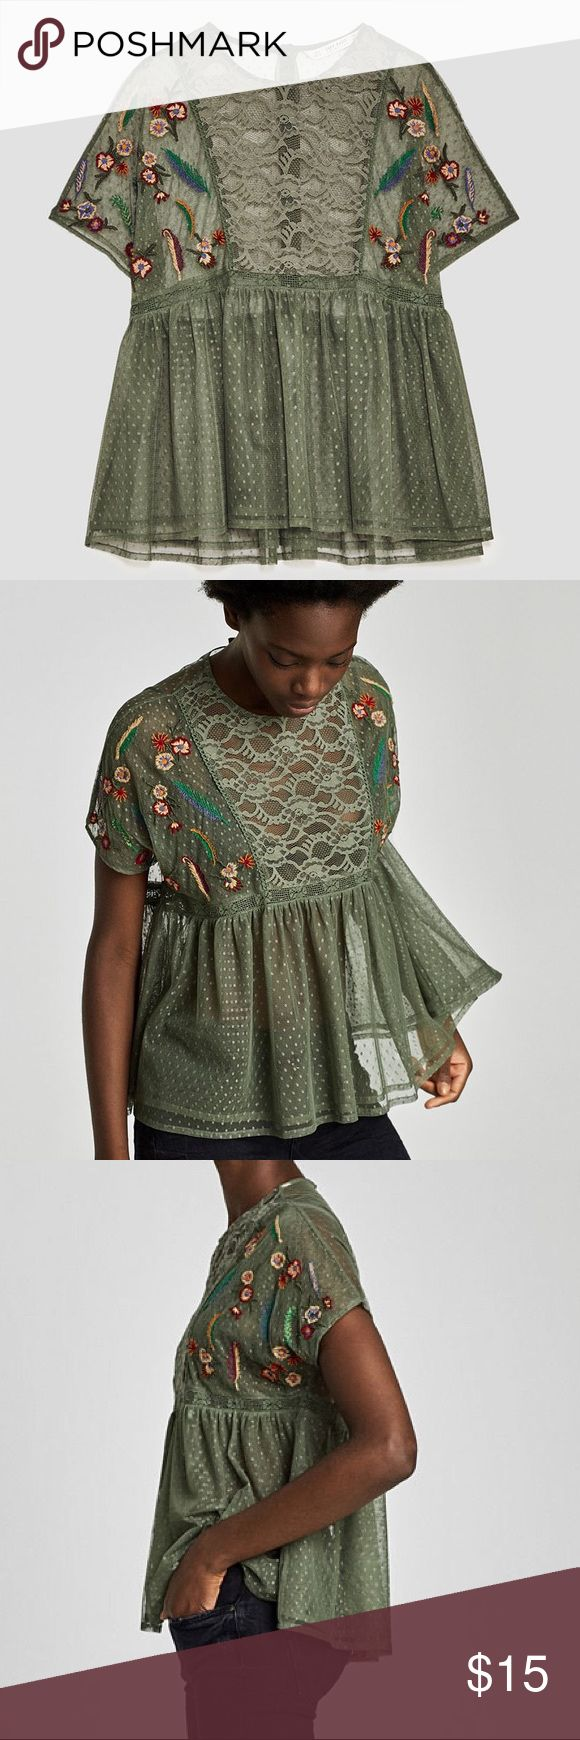 NWT Zara Embroidered Plumetis Blouse in Green Lovely, light & new with tags! Perfect for spring! Round neck blouse with short sleeves and multicoloured floral embroidery on the front. Features a seam below the chest, A-line silhouette and back button fastening.  Outer Shell Main Fabric: 100% polyester Secondary Fabric: 90% nylon, 10%elastane Lace: 100% cotton Embroidery: 100% polyester Zara Tops Blouses